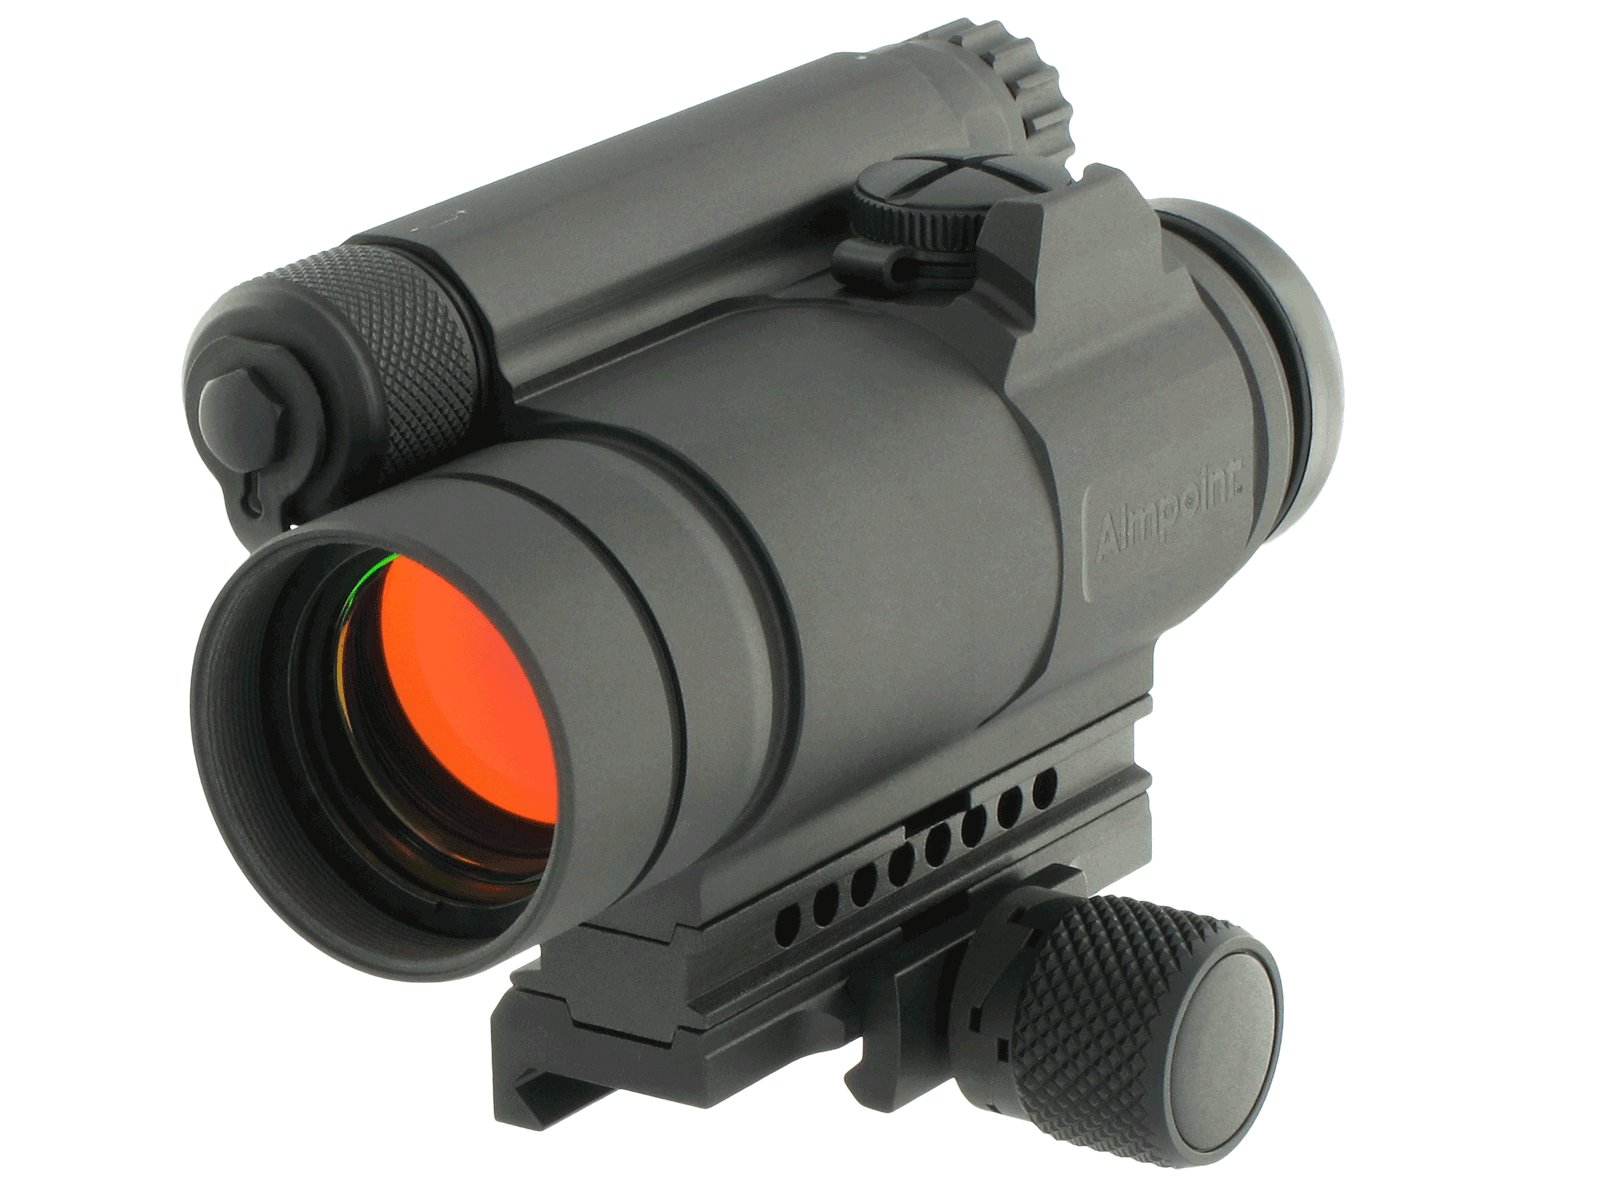 Aimpoint Sights